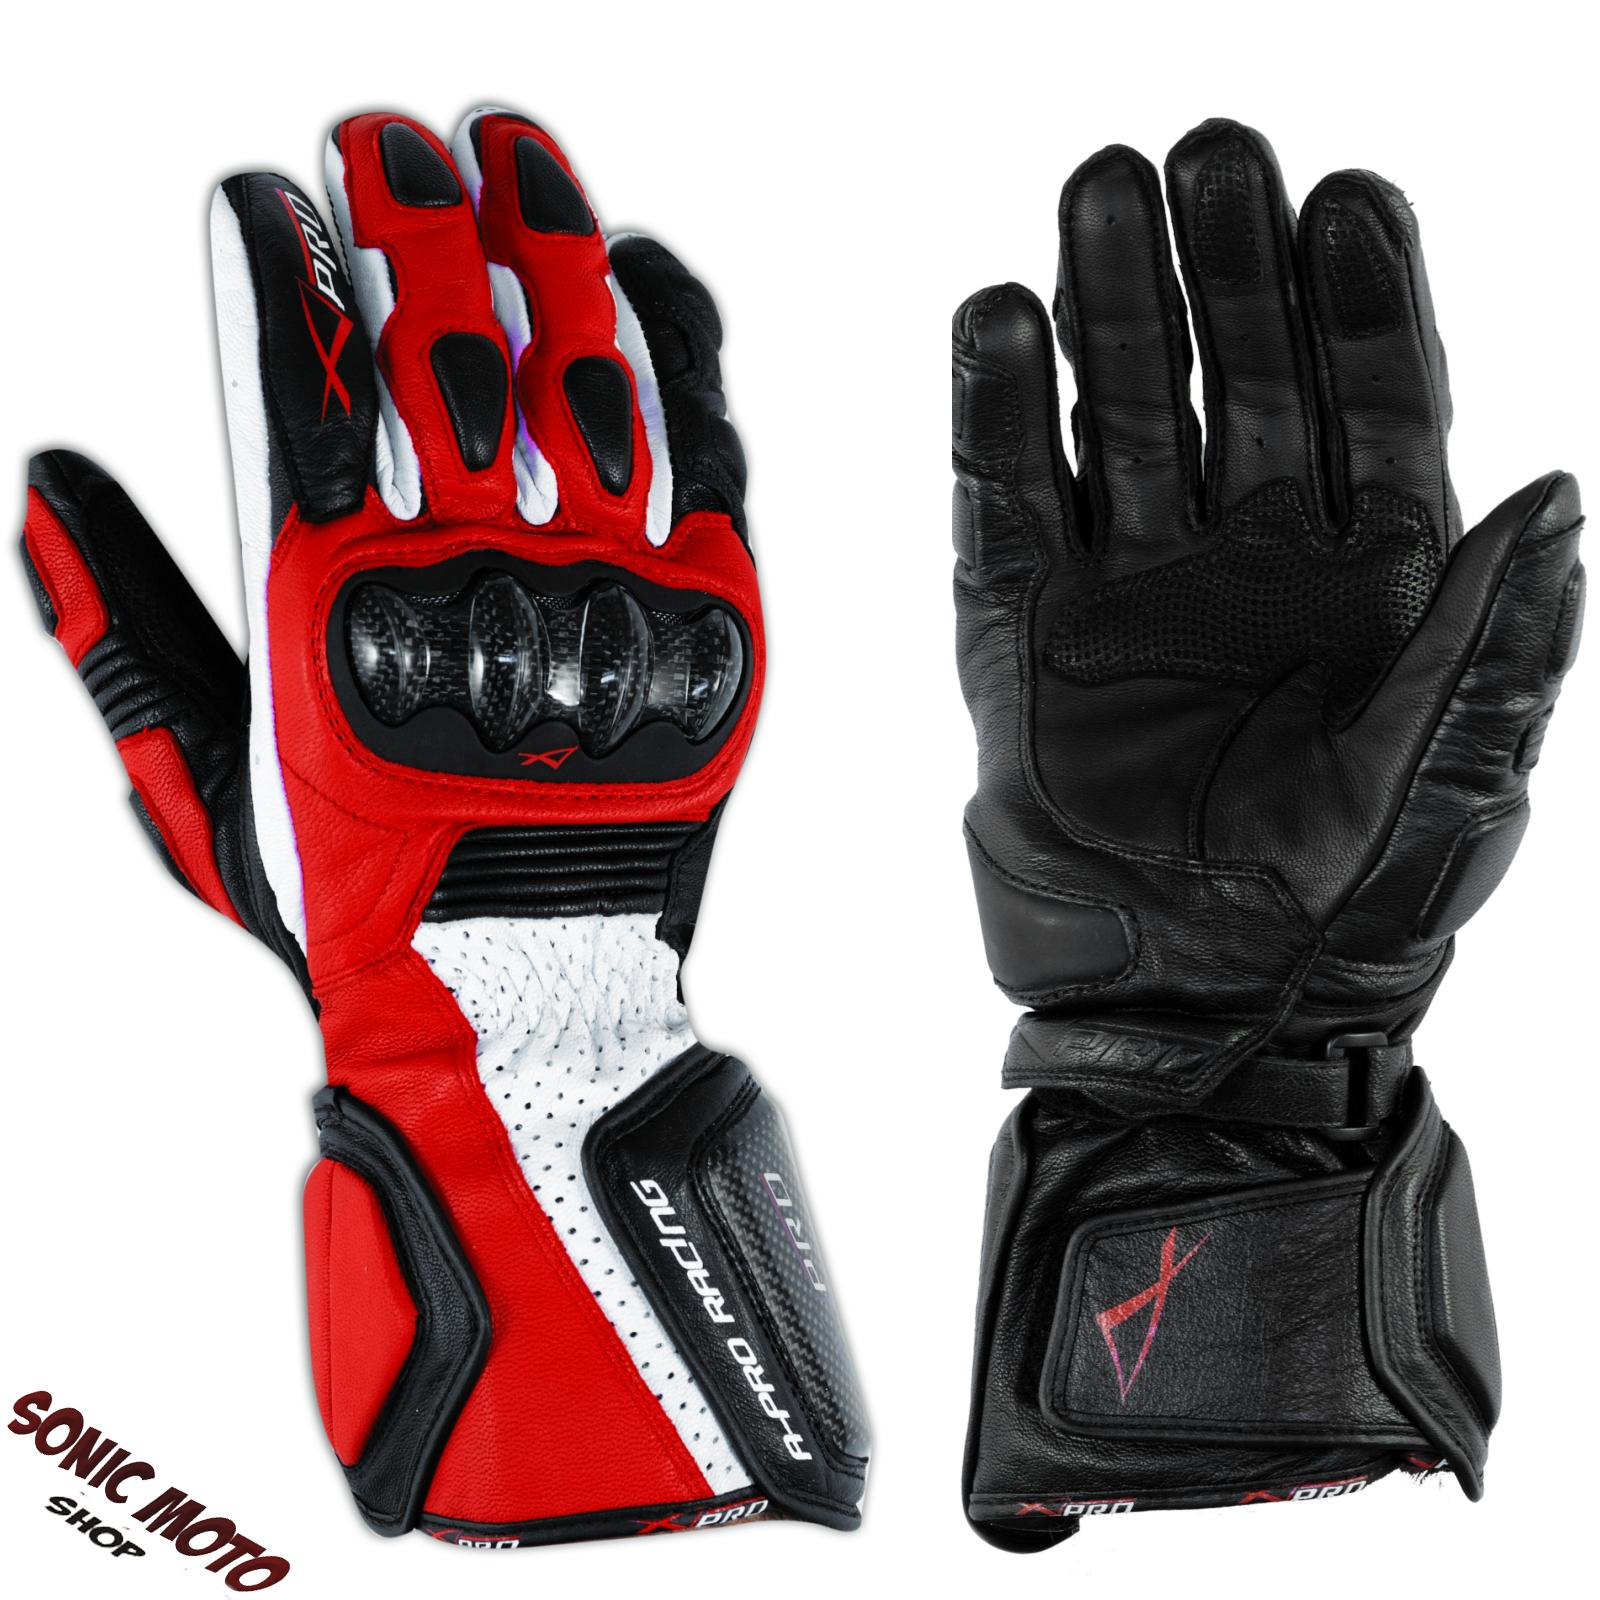 Motorcycle Biker Racing Sports Leather Riding Gloves Protection Knuckles Red